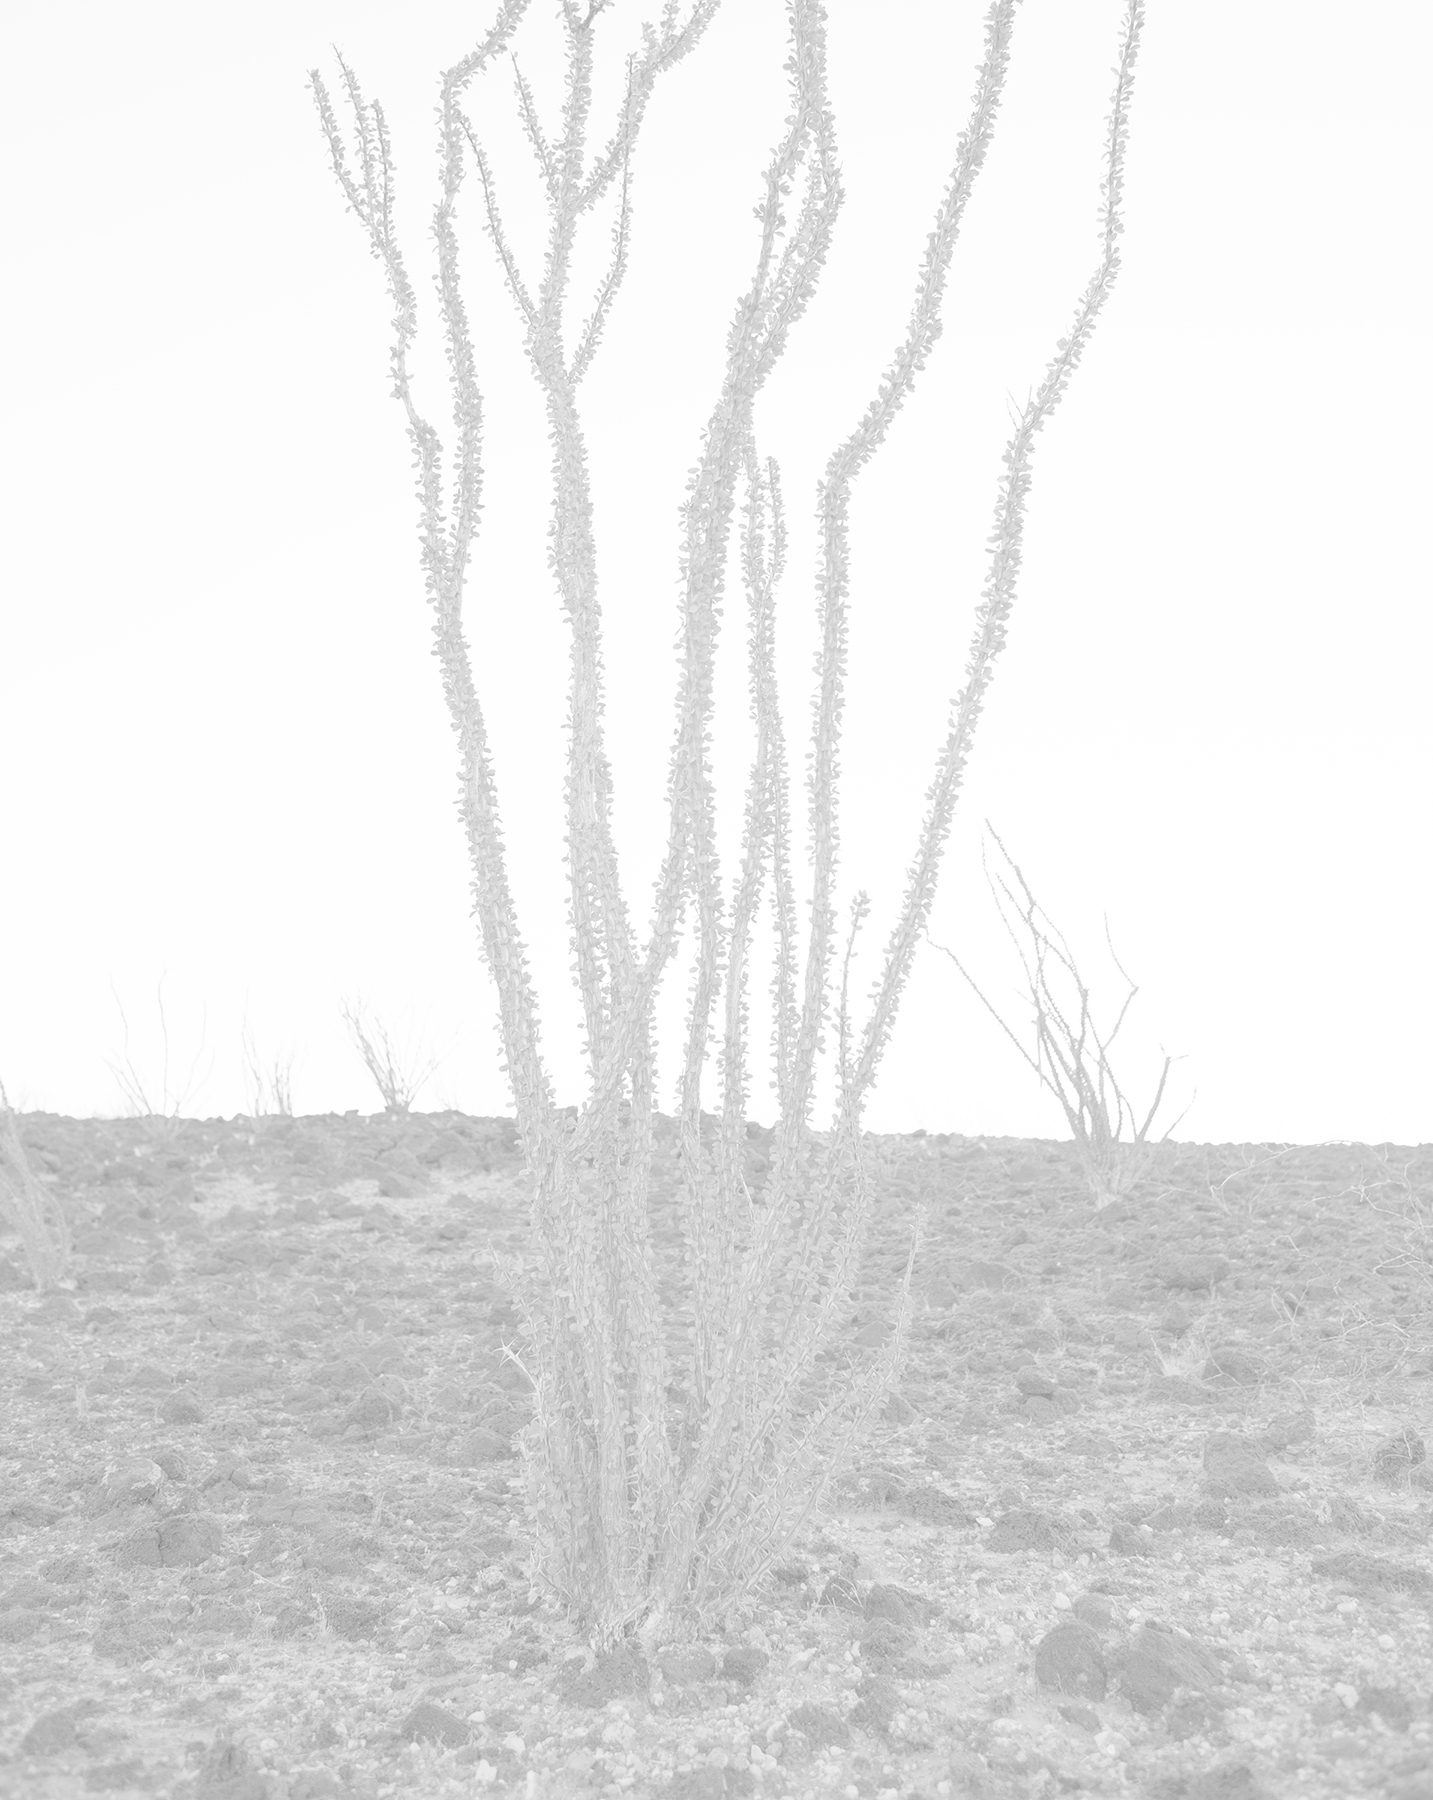 scott b. davis  ocotillo, ocotillo (no. 14),  2015/2016 palladium print 20 x 16 inches edition 1/5